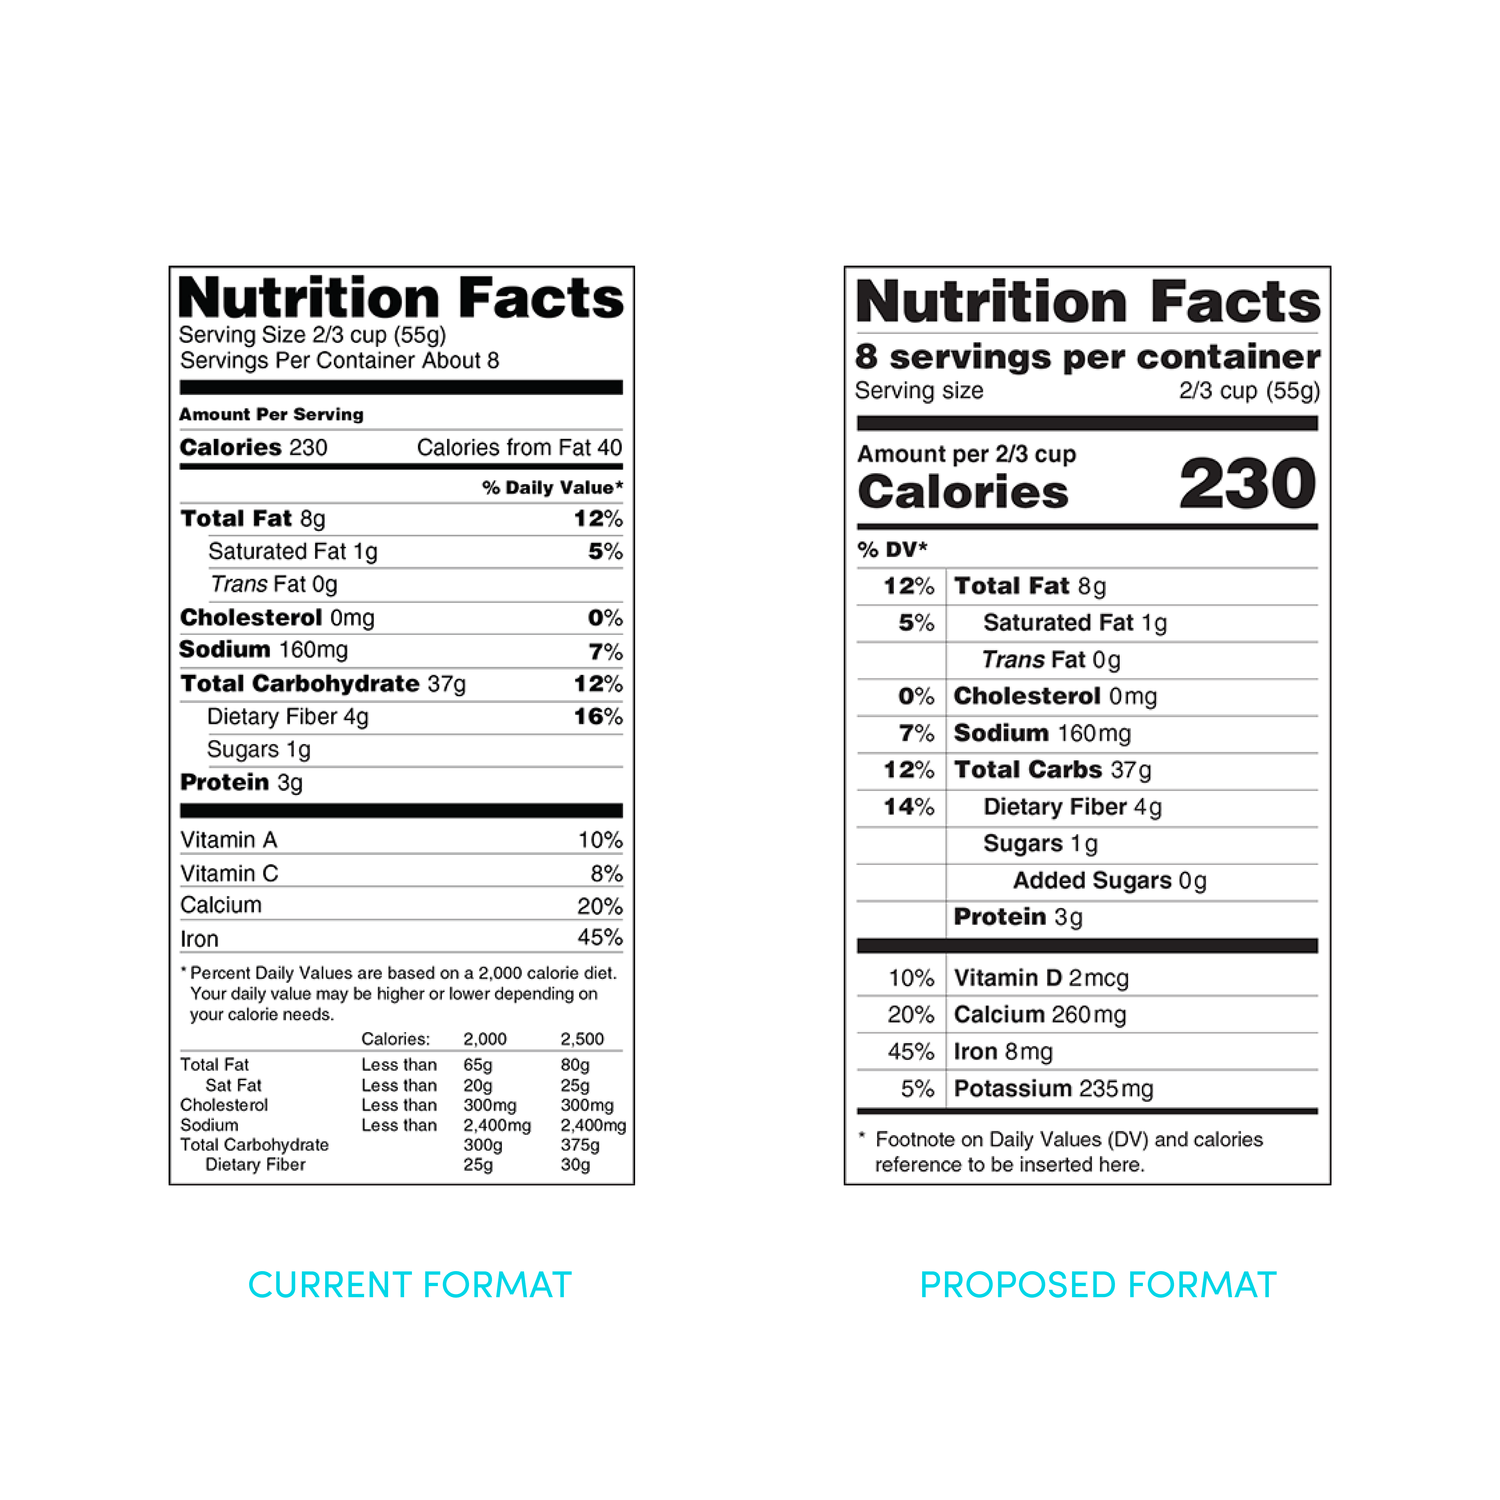 FDA Proposes Most Significant Update to Nutrition Facts Labeling in 20 Year